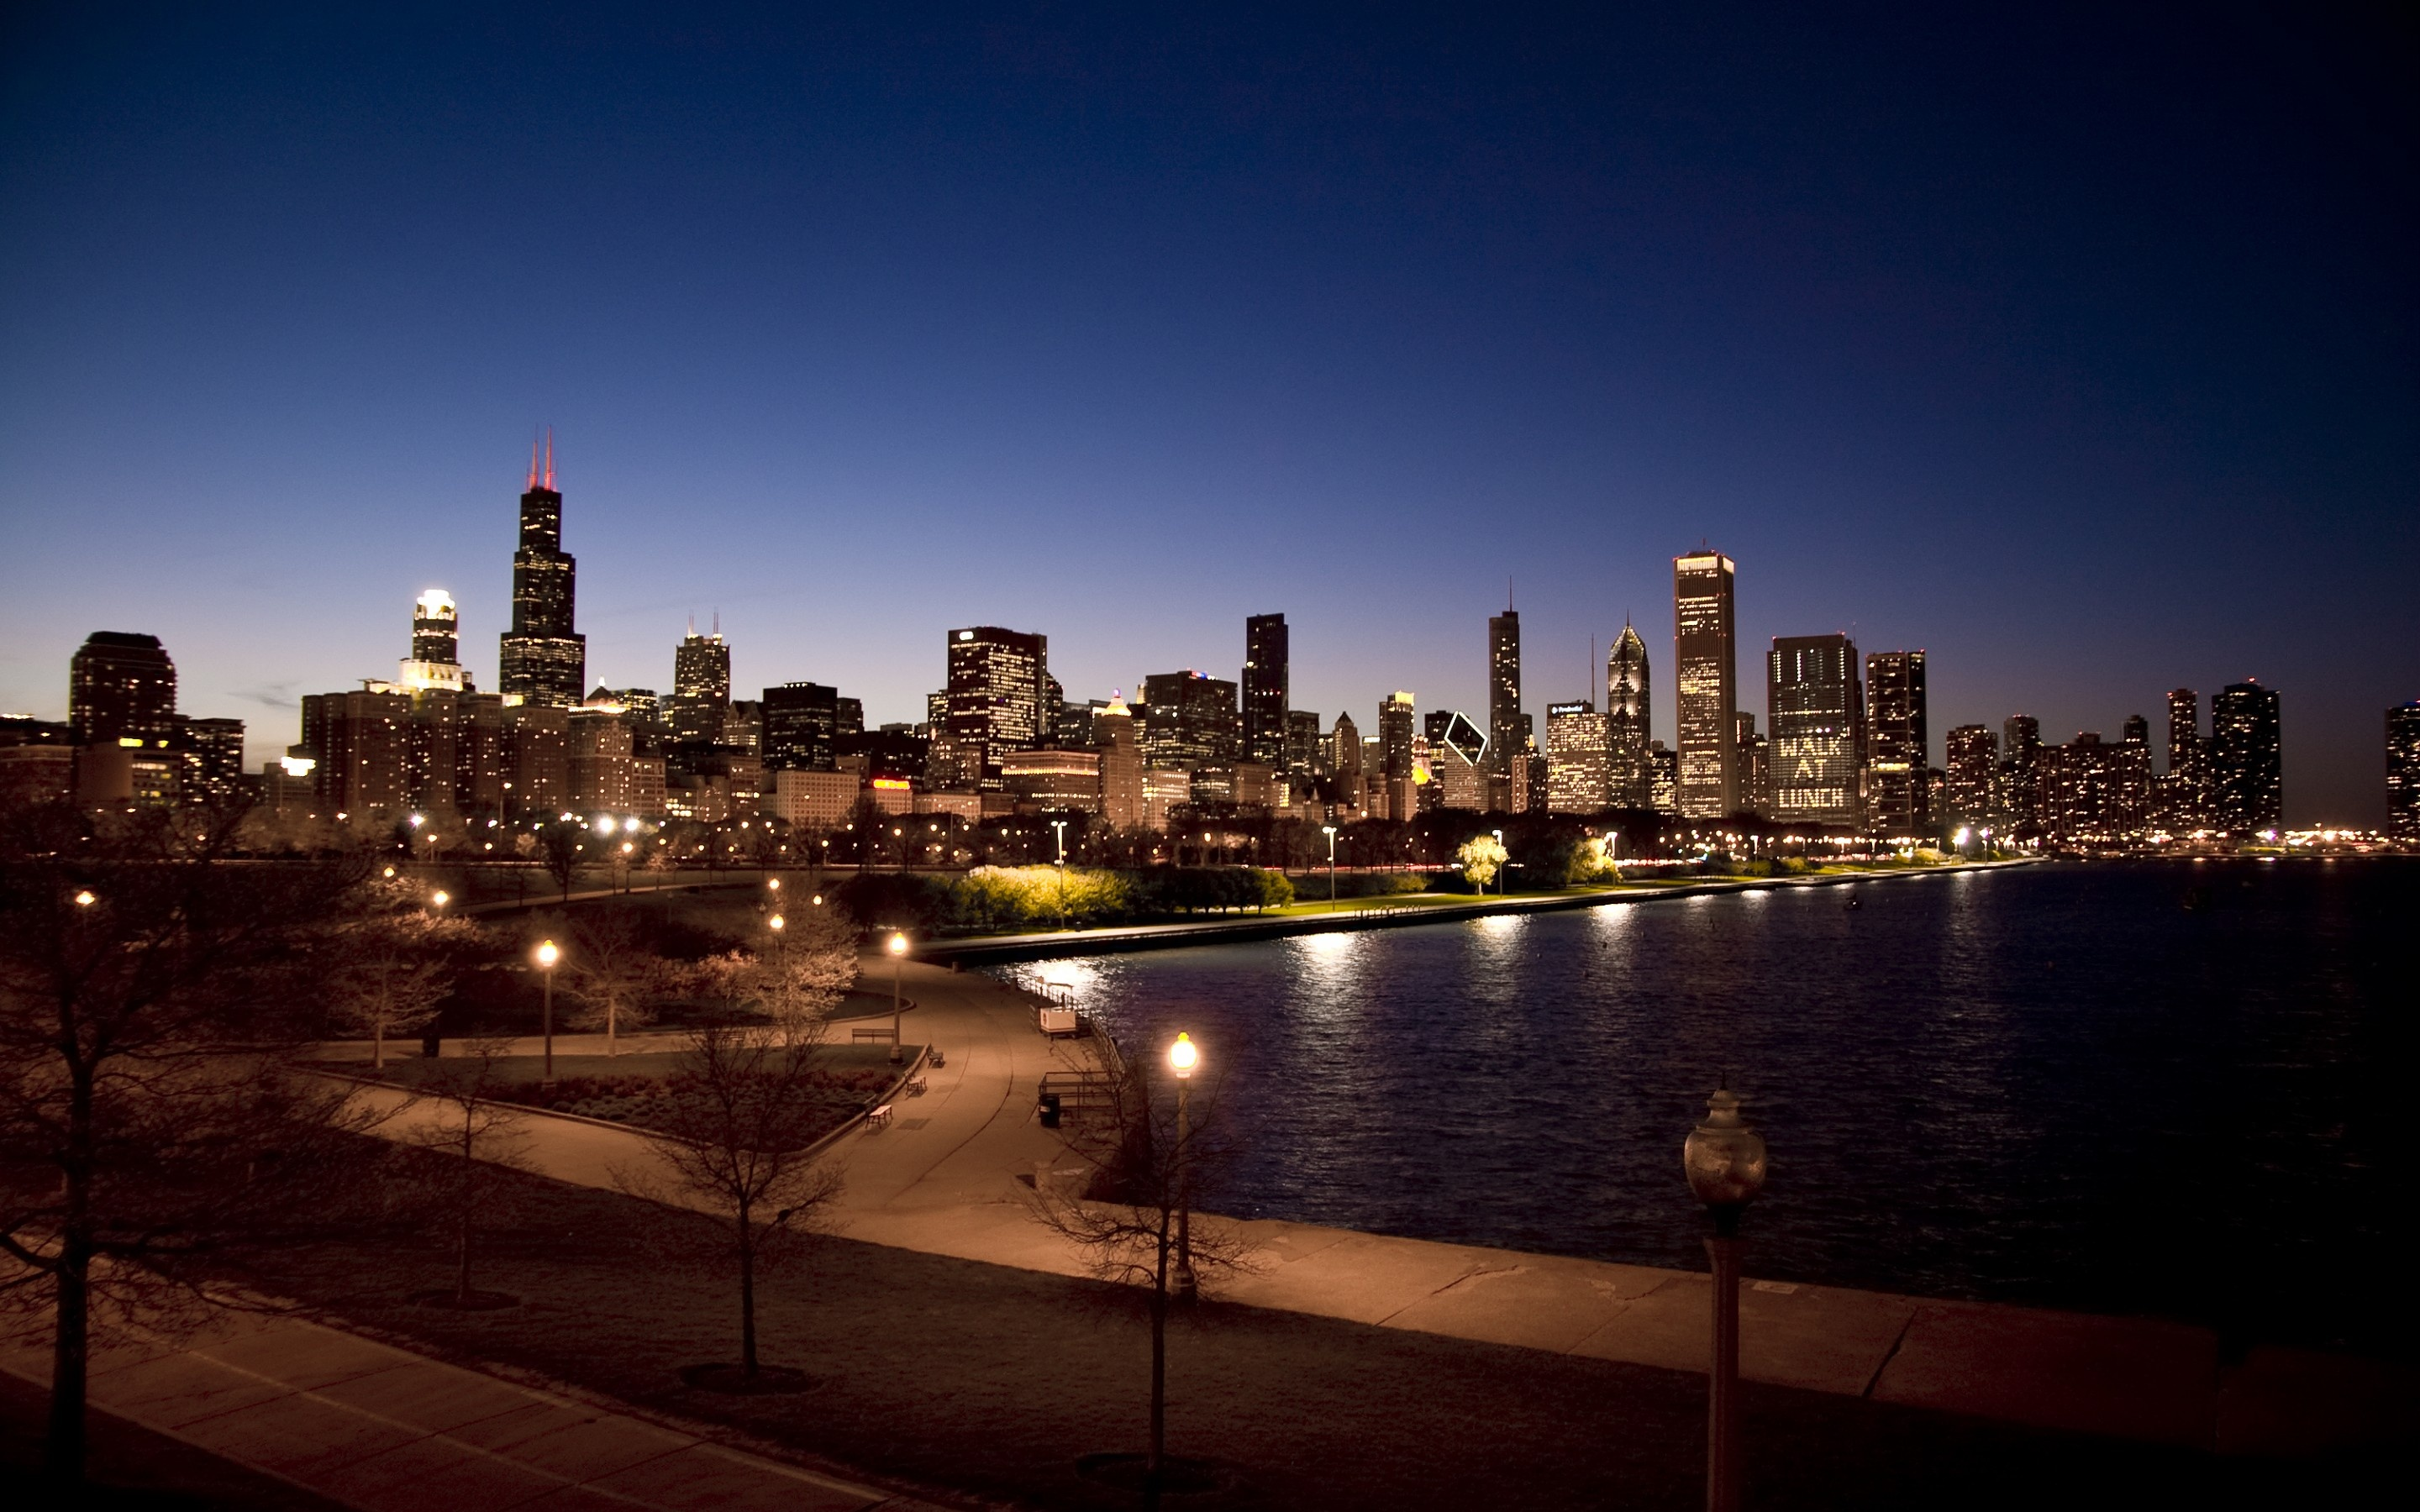 USA Night Chicago City Wallpapers